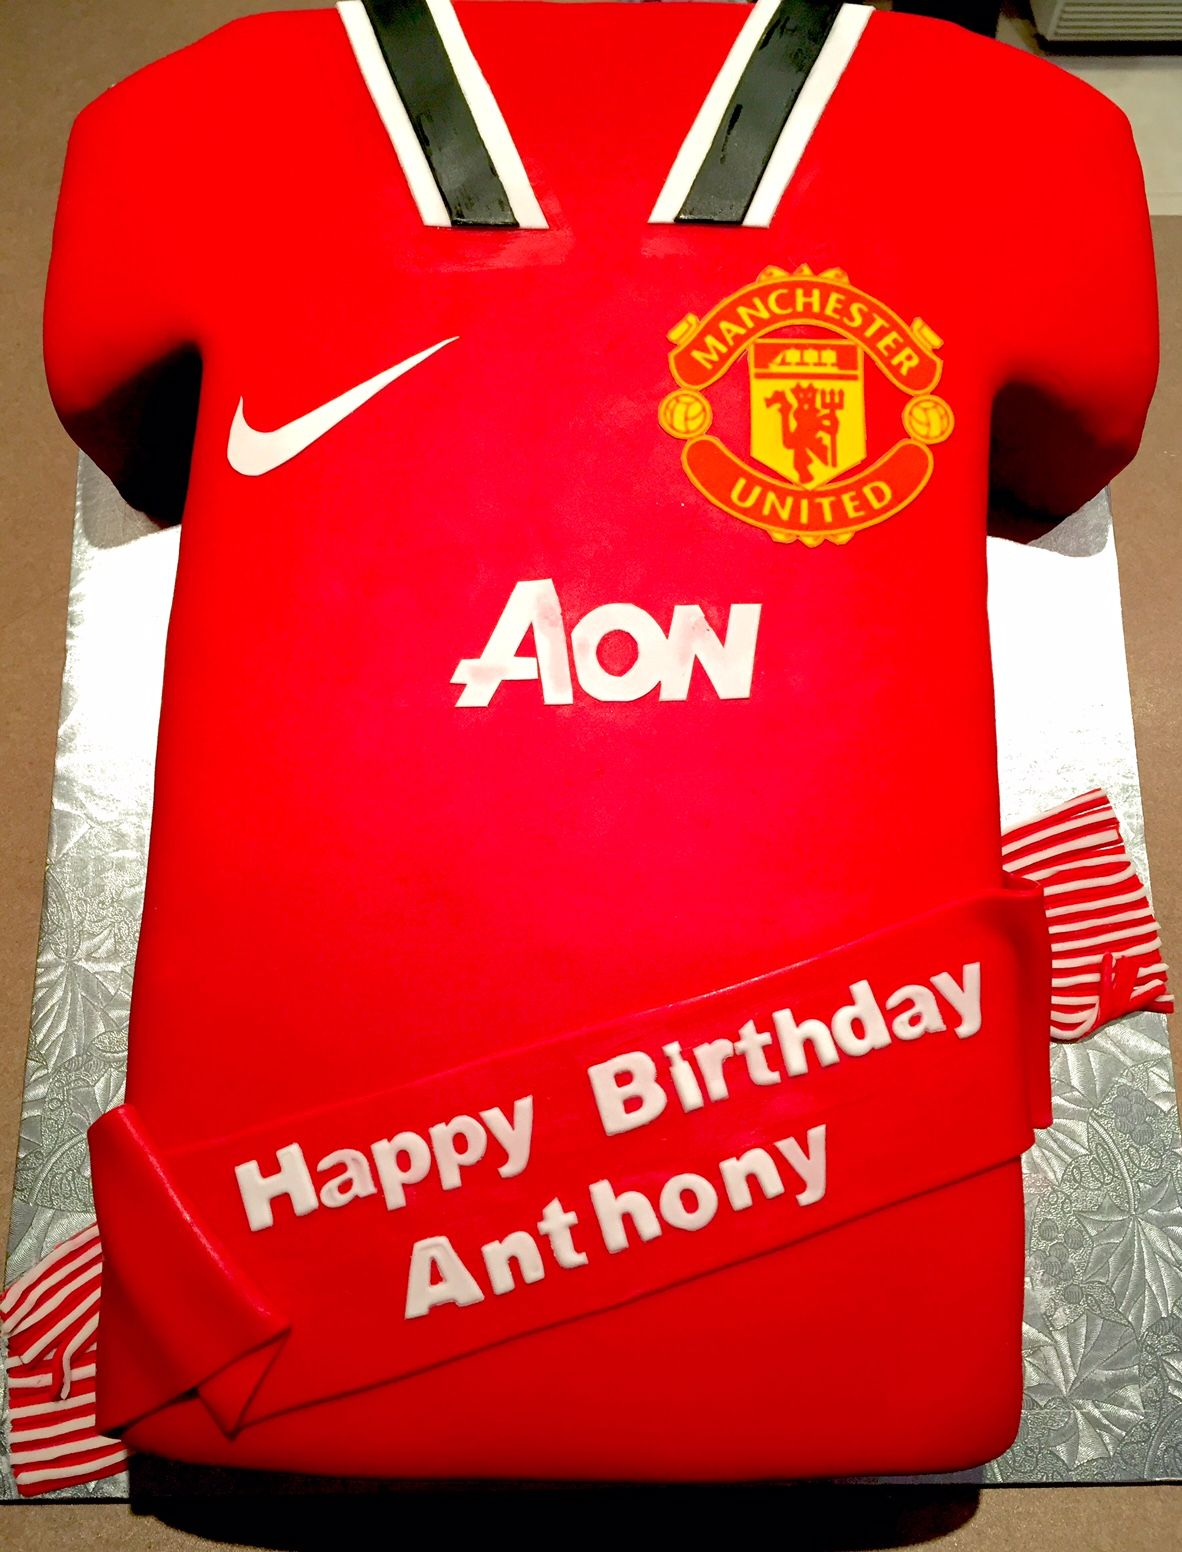 Manchester United Soccer Jersey Cake Man U Logo Is Edible Image The Rest Is Handmade Shirt Cake Happy Birthday Anthony Edible Images